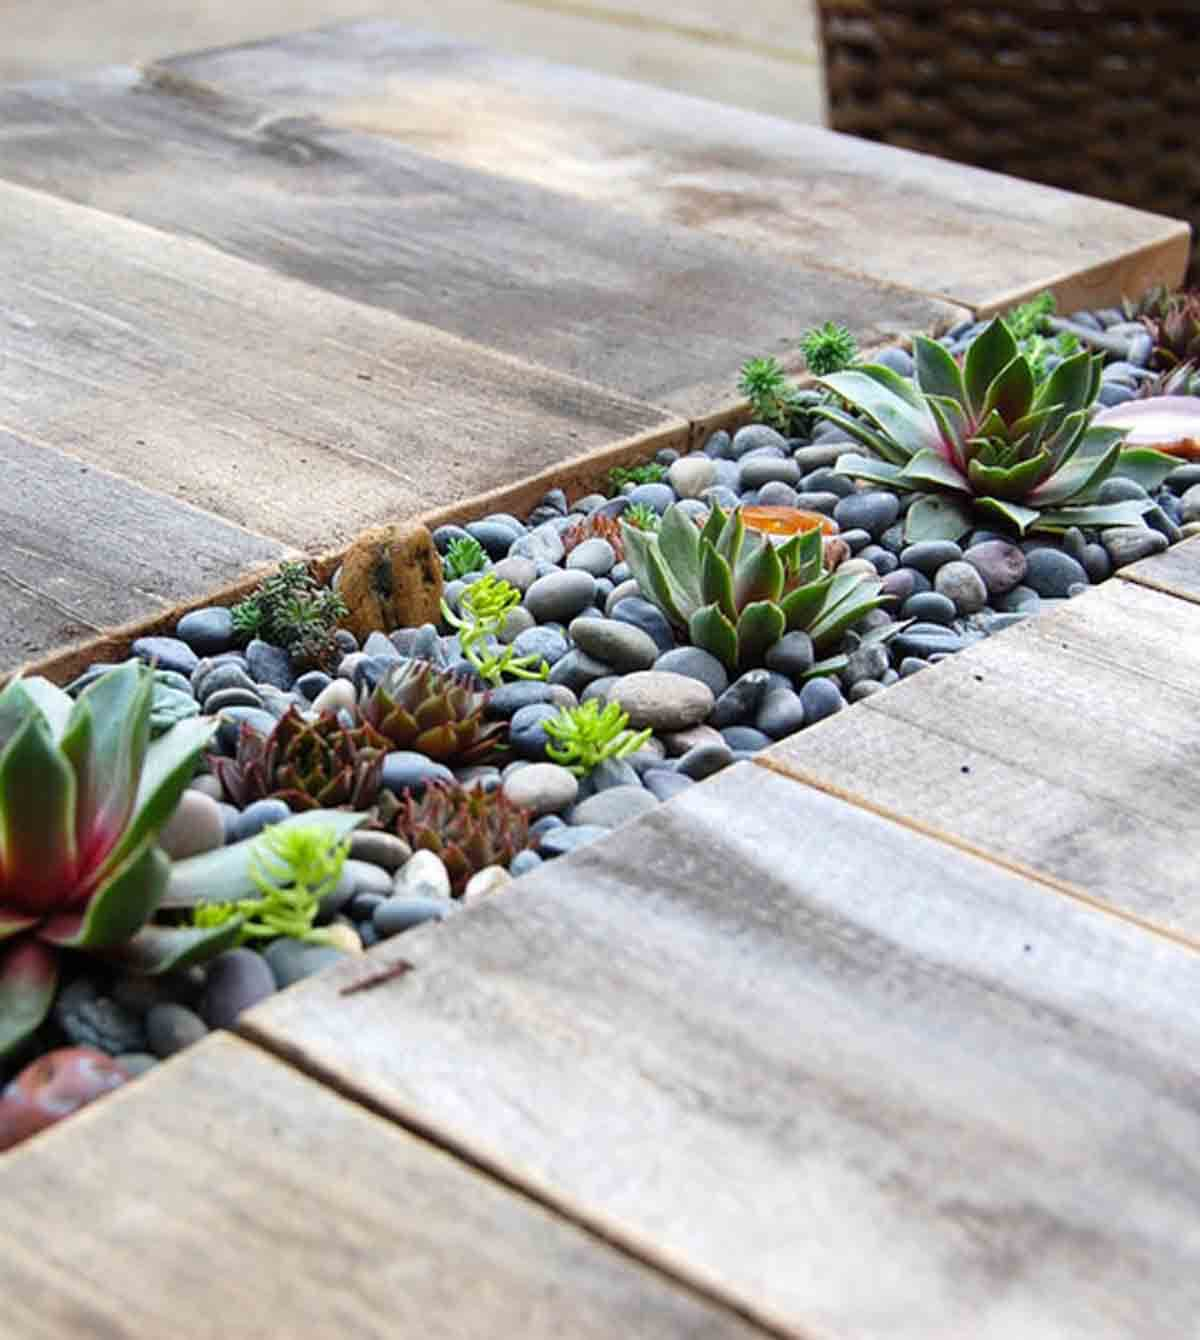 Built In Planter Ideas: 33 Best Built-In Planter Ideas And Designs For 2019